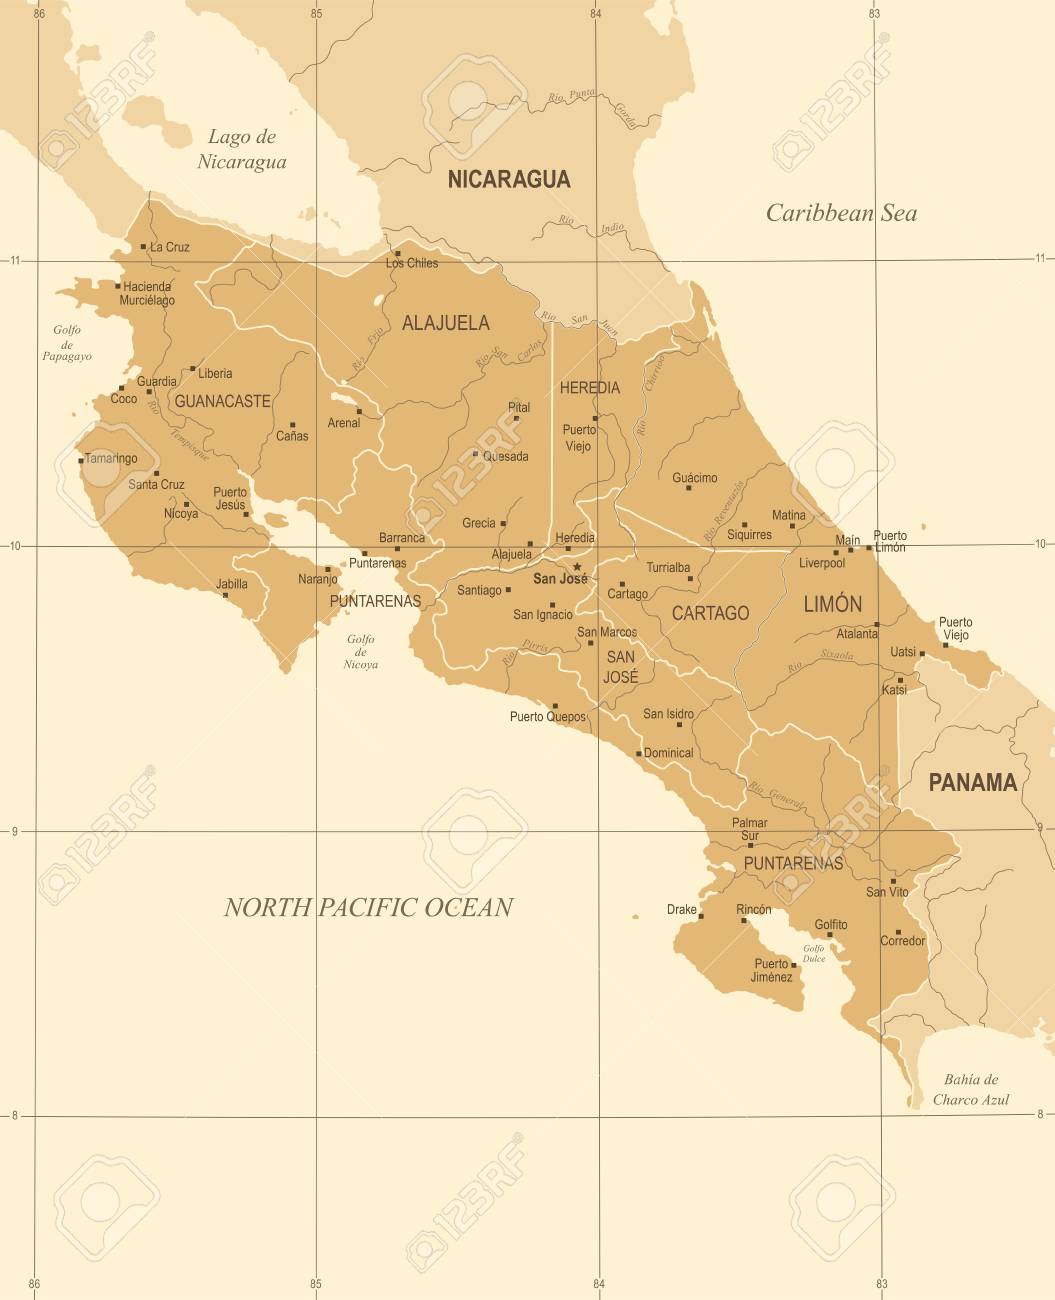 Costa Rica Map - Vintage High Detailed Vector Illustration Royalty ...